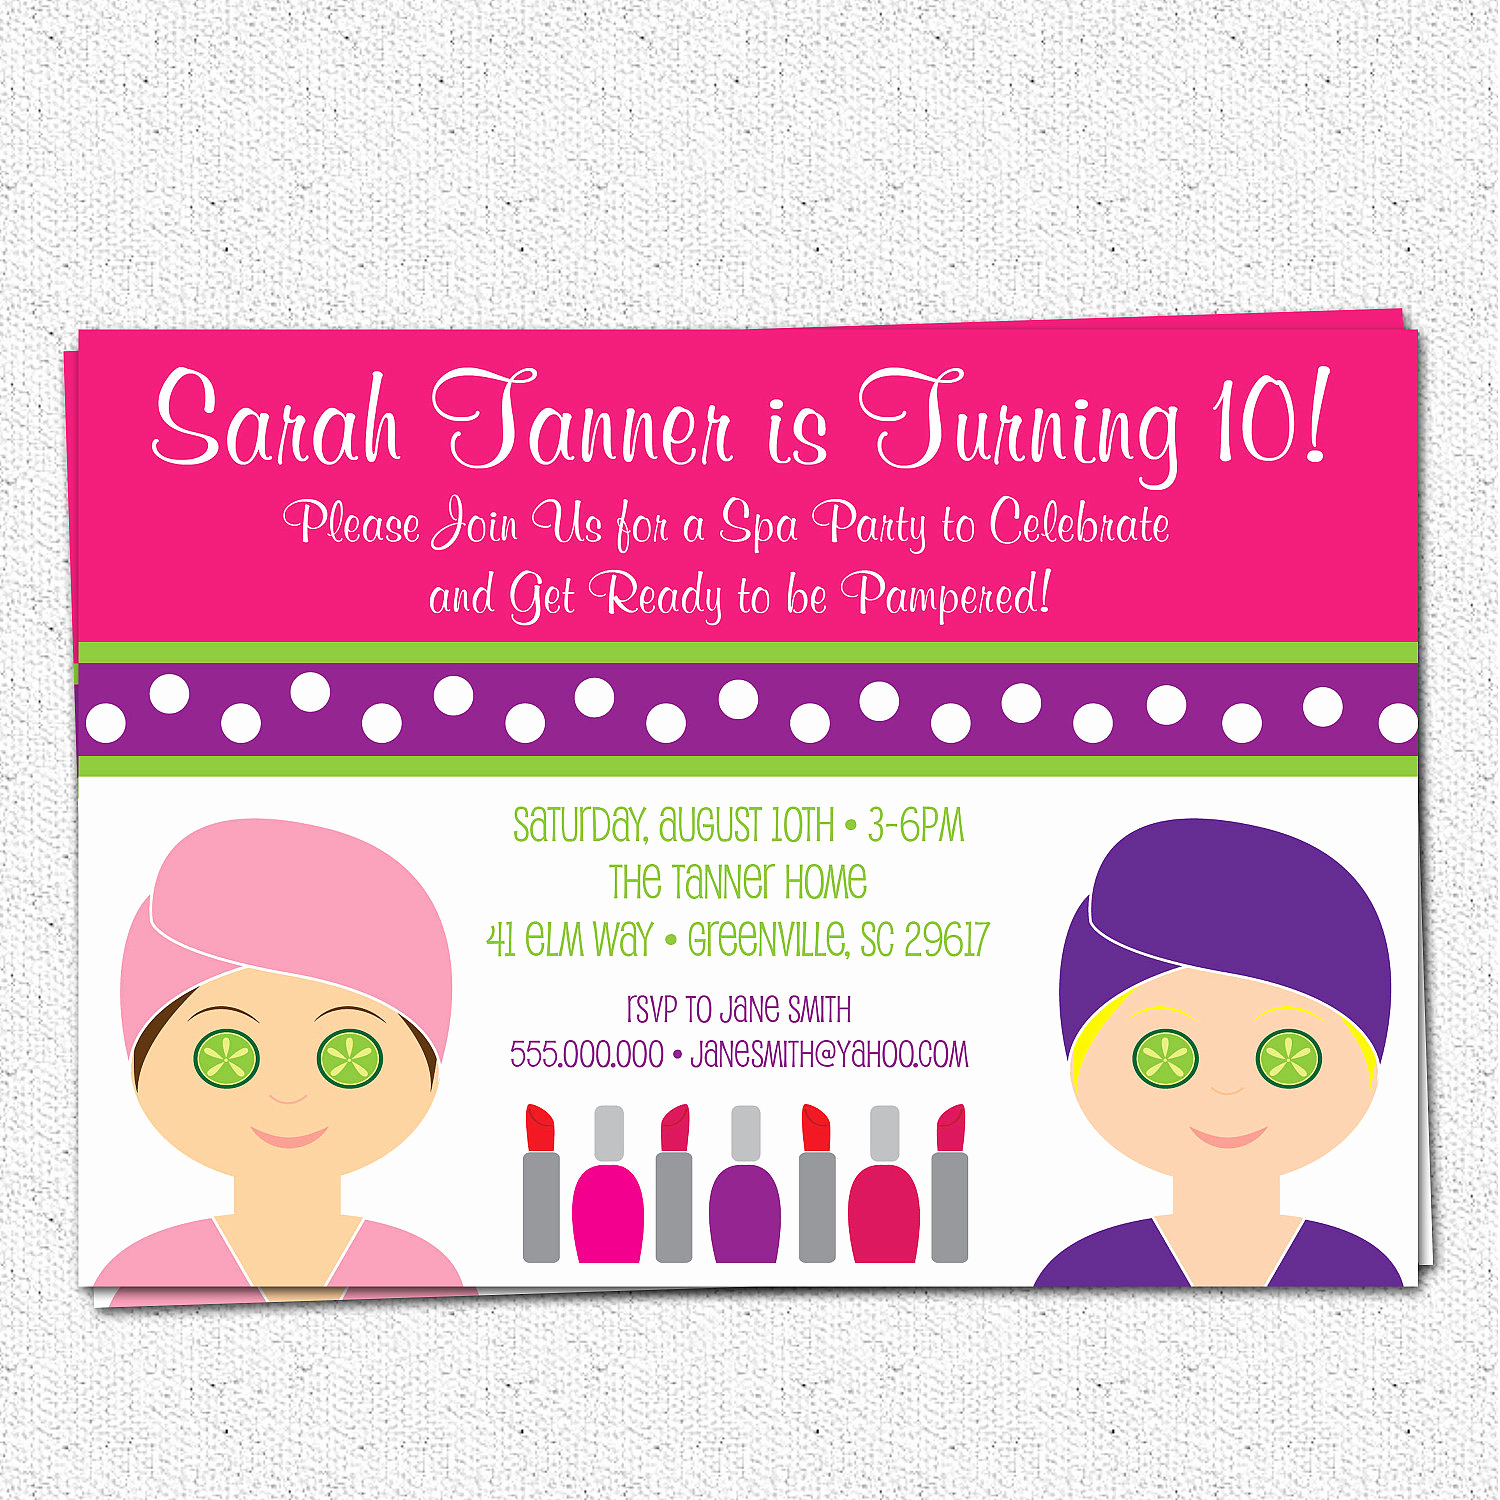 Spa Party Invitation Wording Inspirational Spa Birthday Party Invitation Printable Girl Child Make